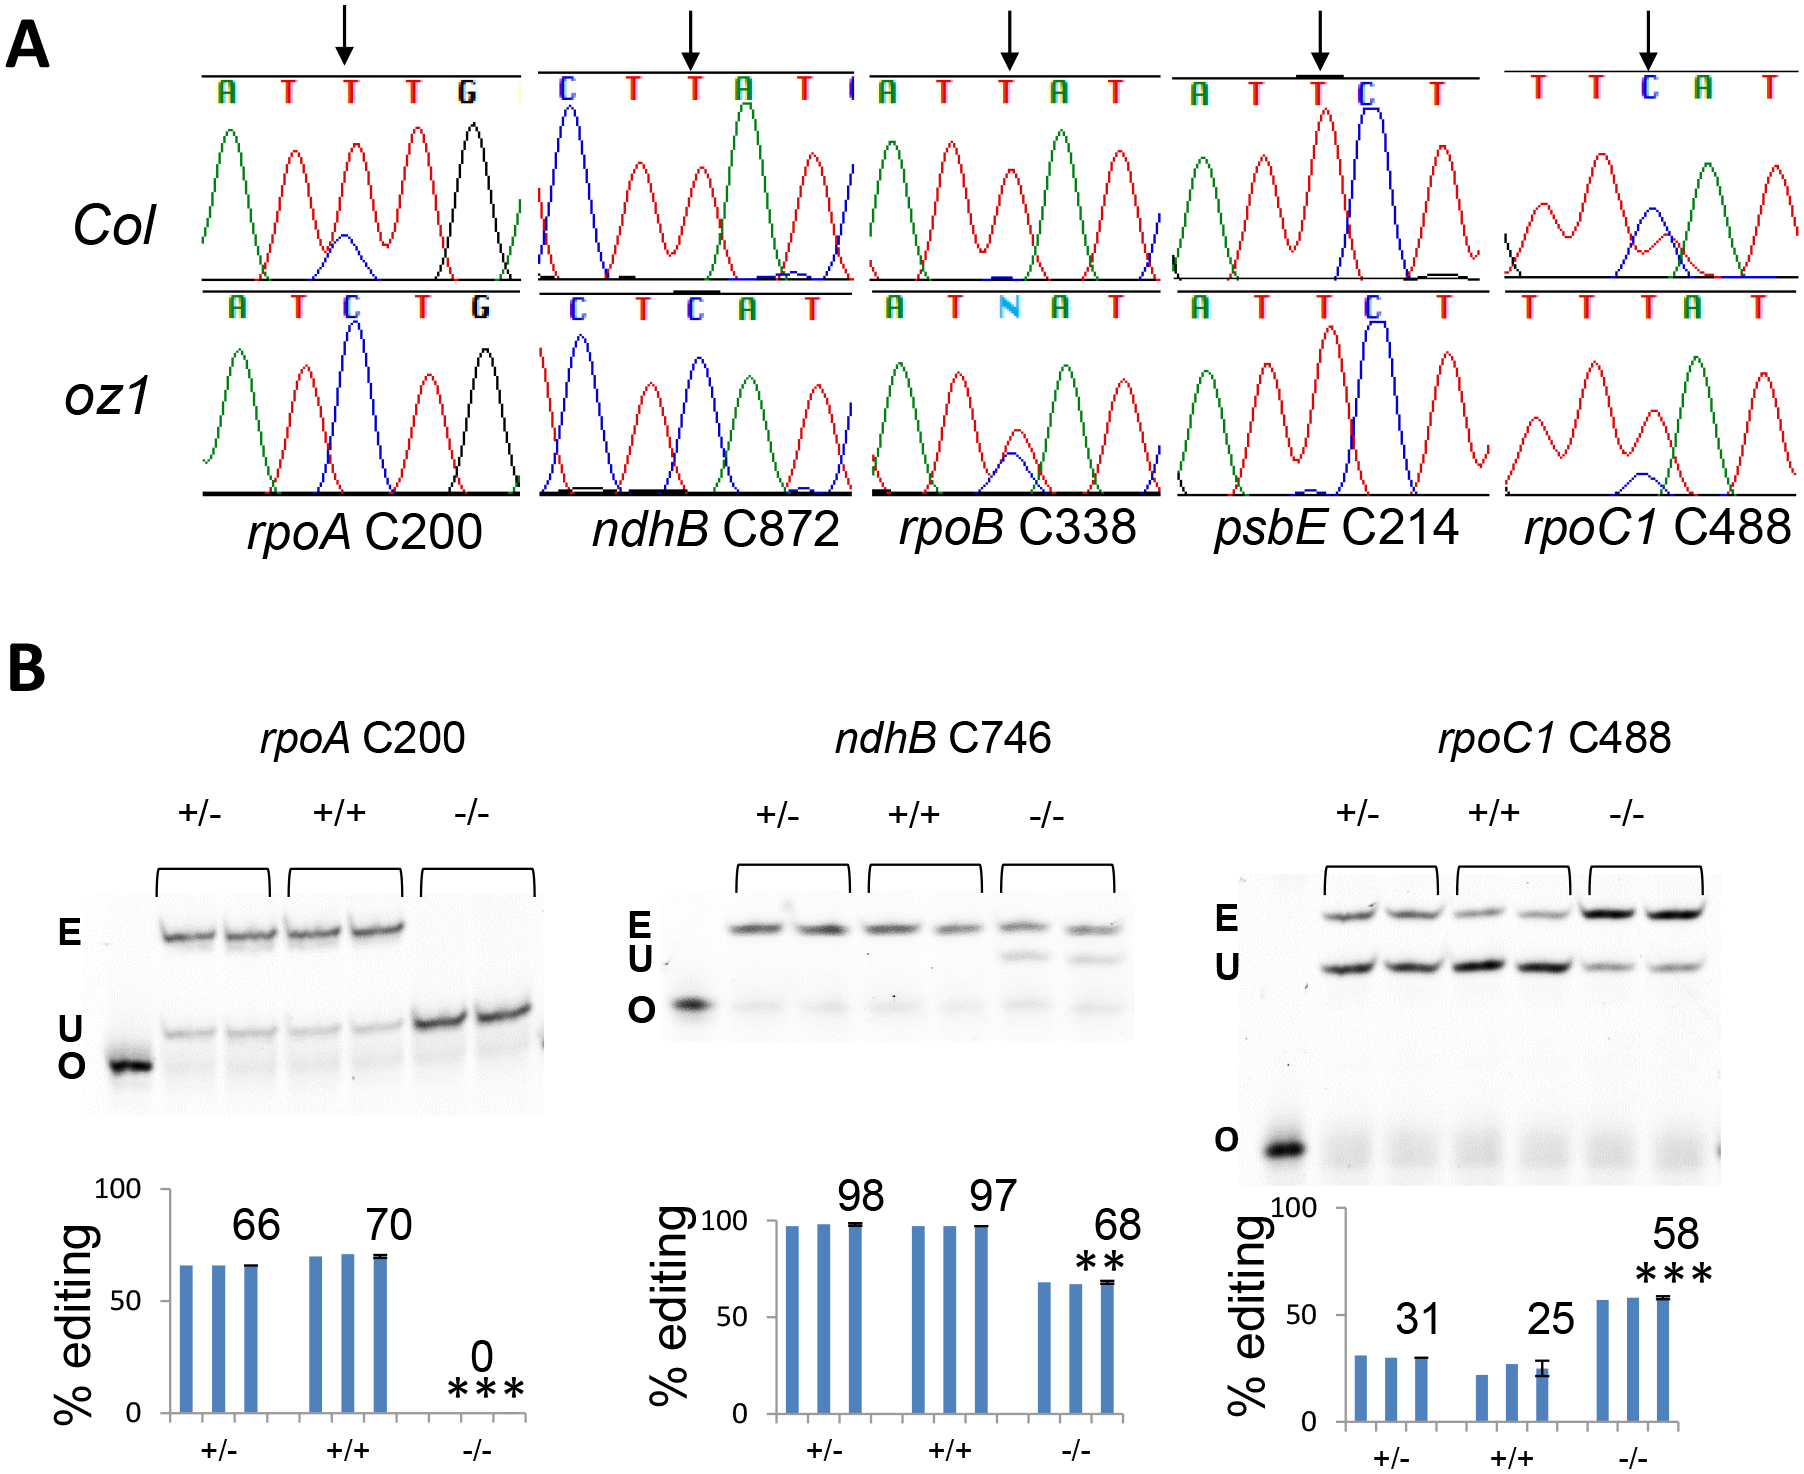 RNA editing at multiple plastid sites is affected in <i>oz1</i>.